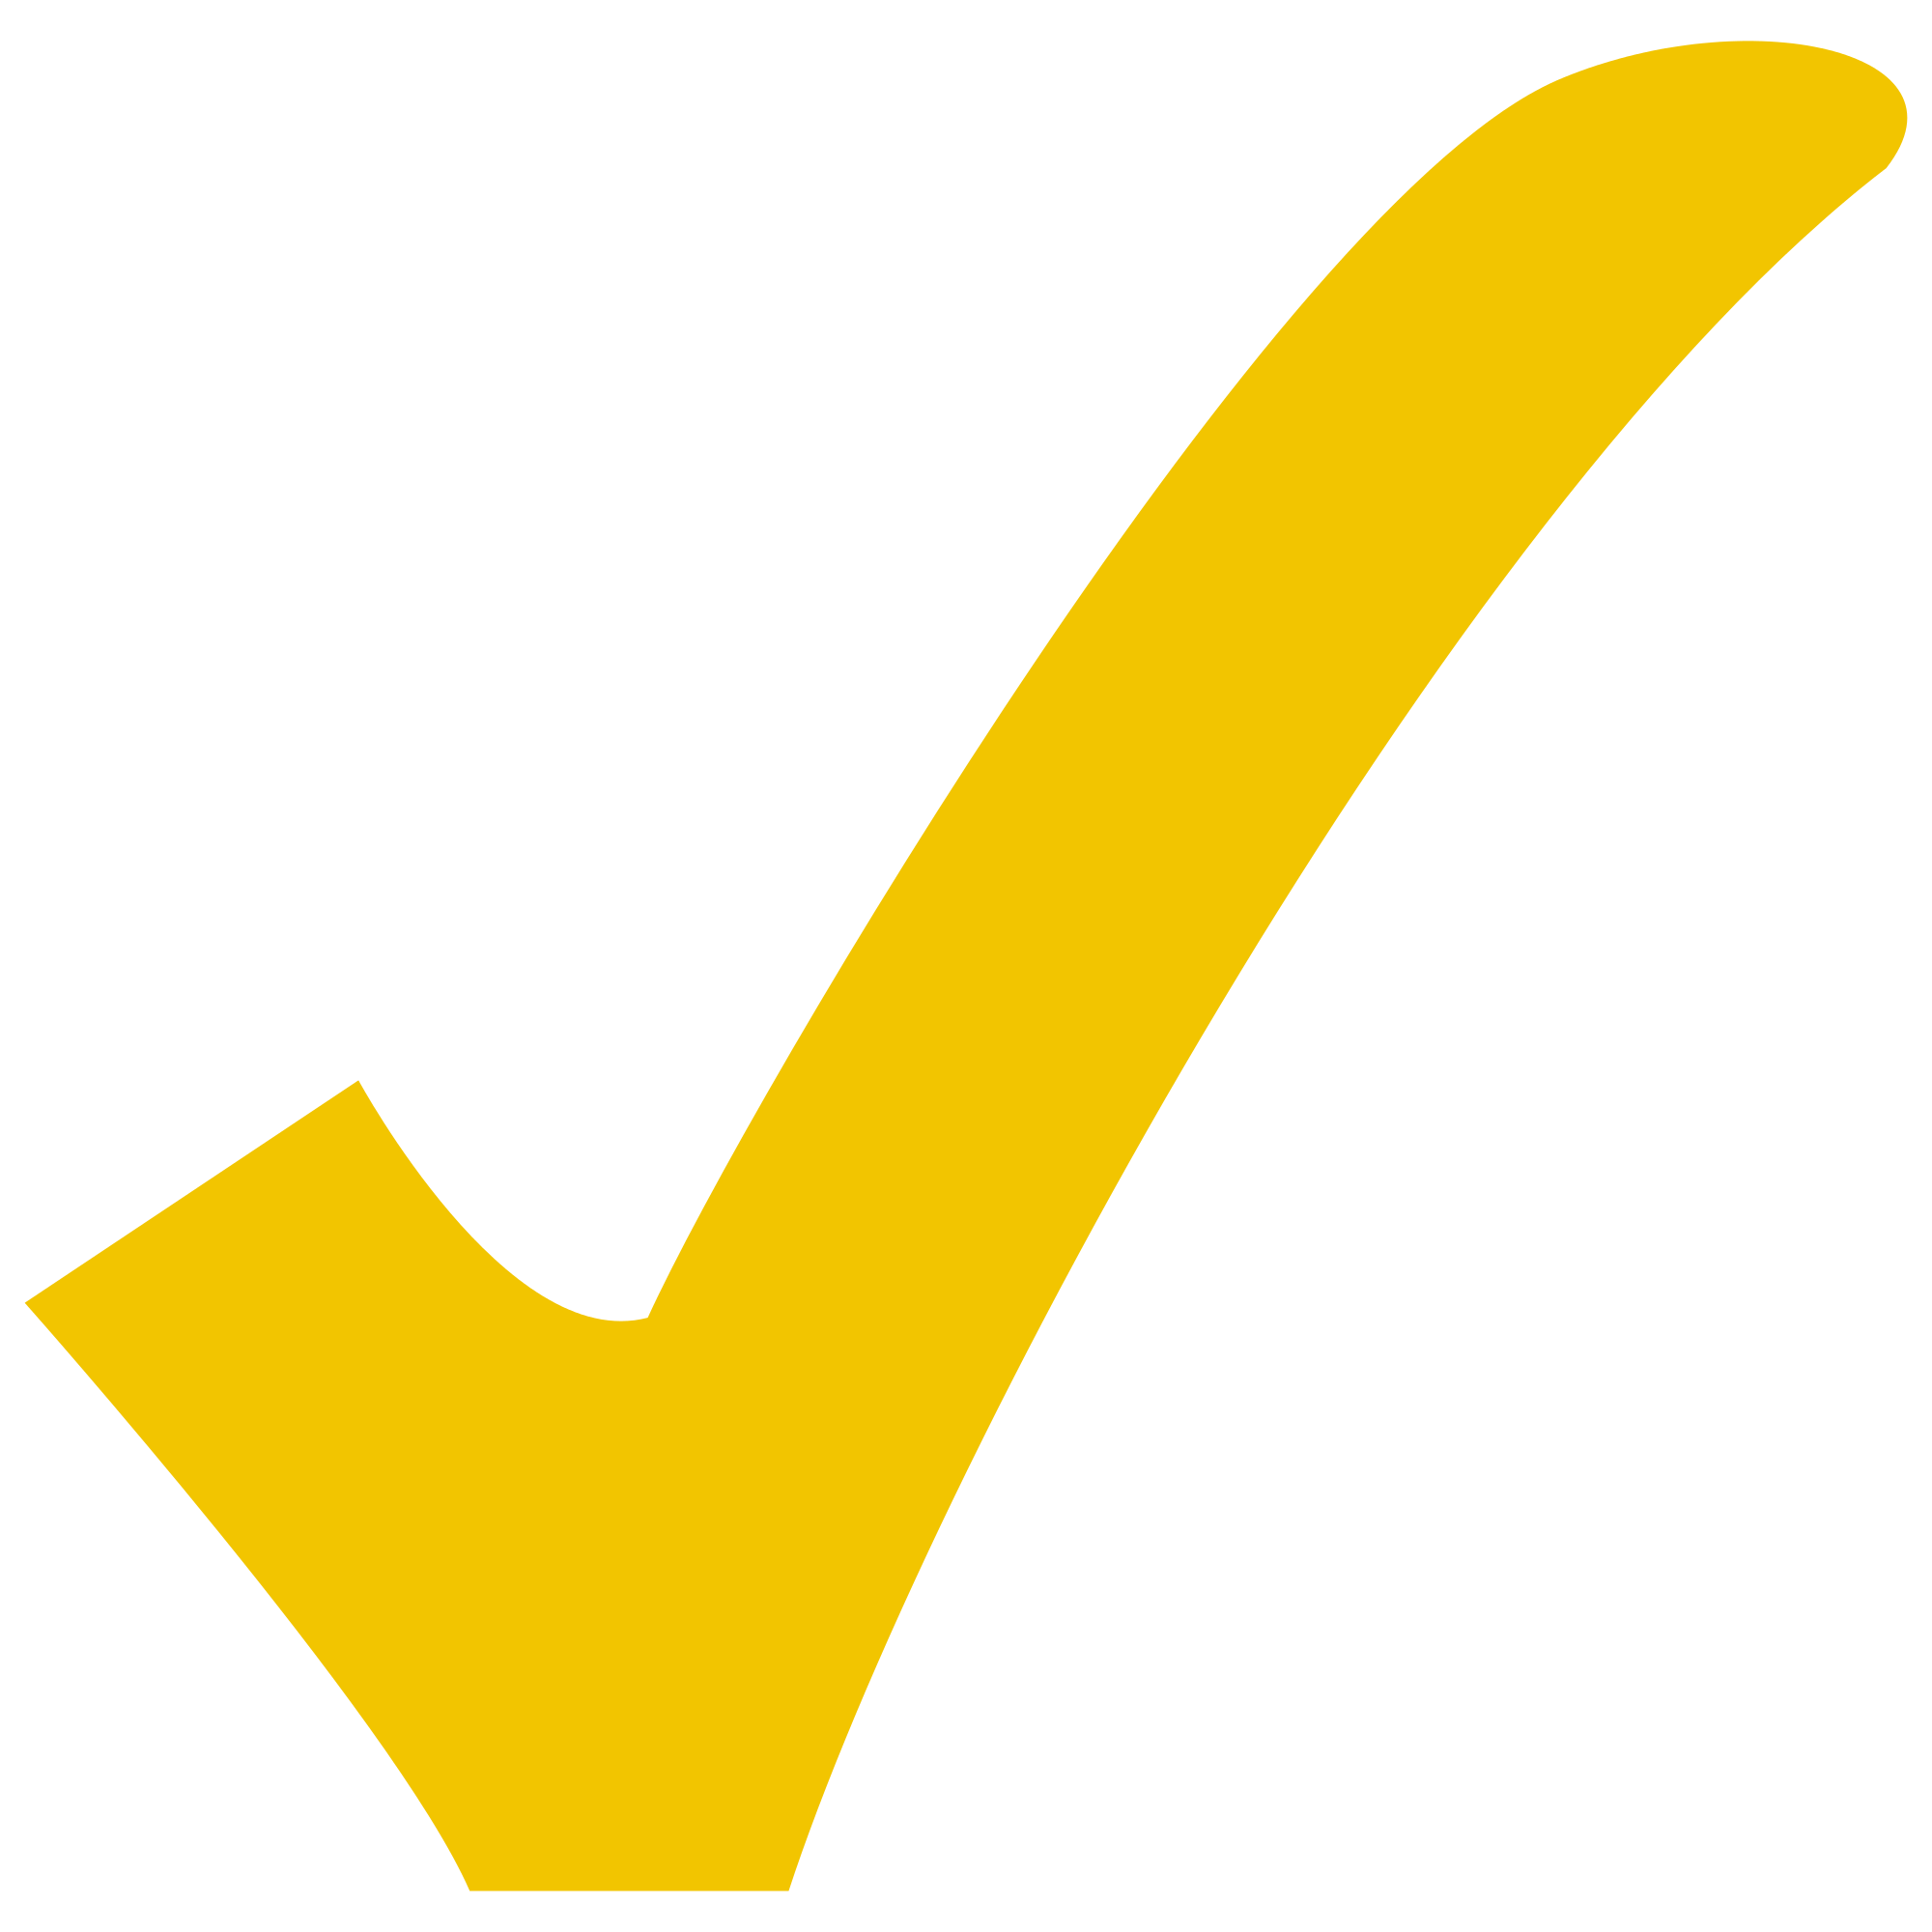 Free Yellow Check Mark Png, Download Free Clip Art, Free Clip Art on.